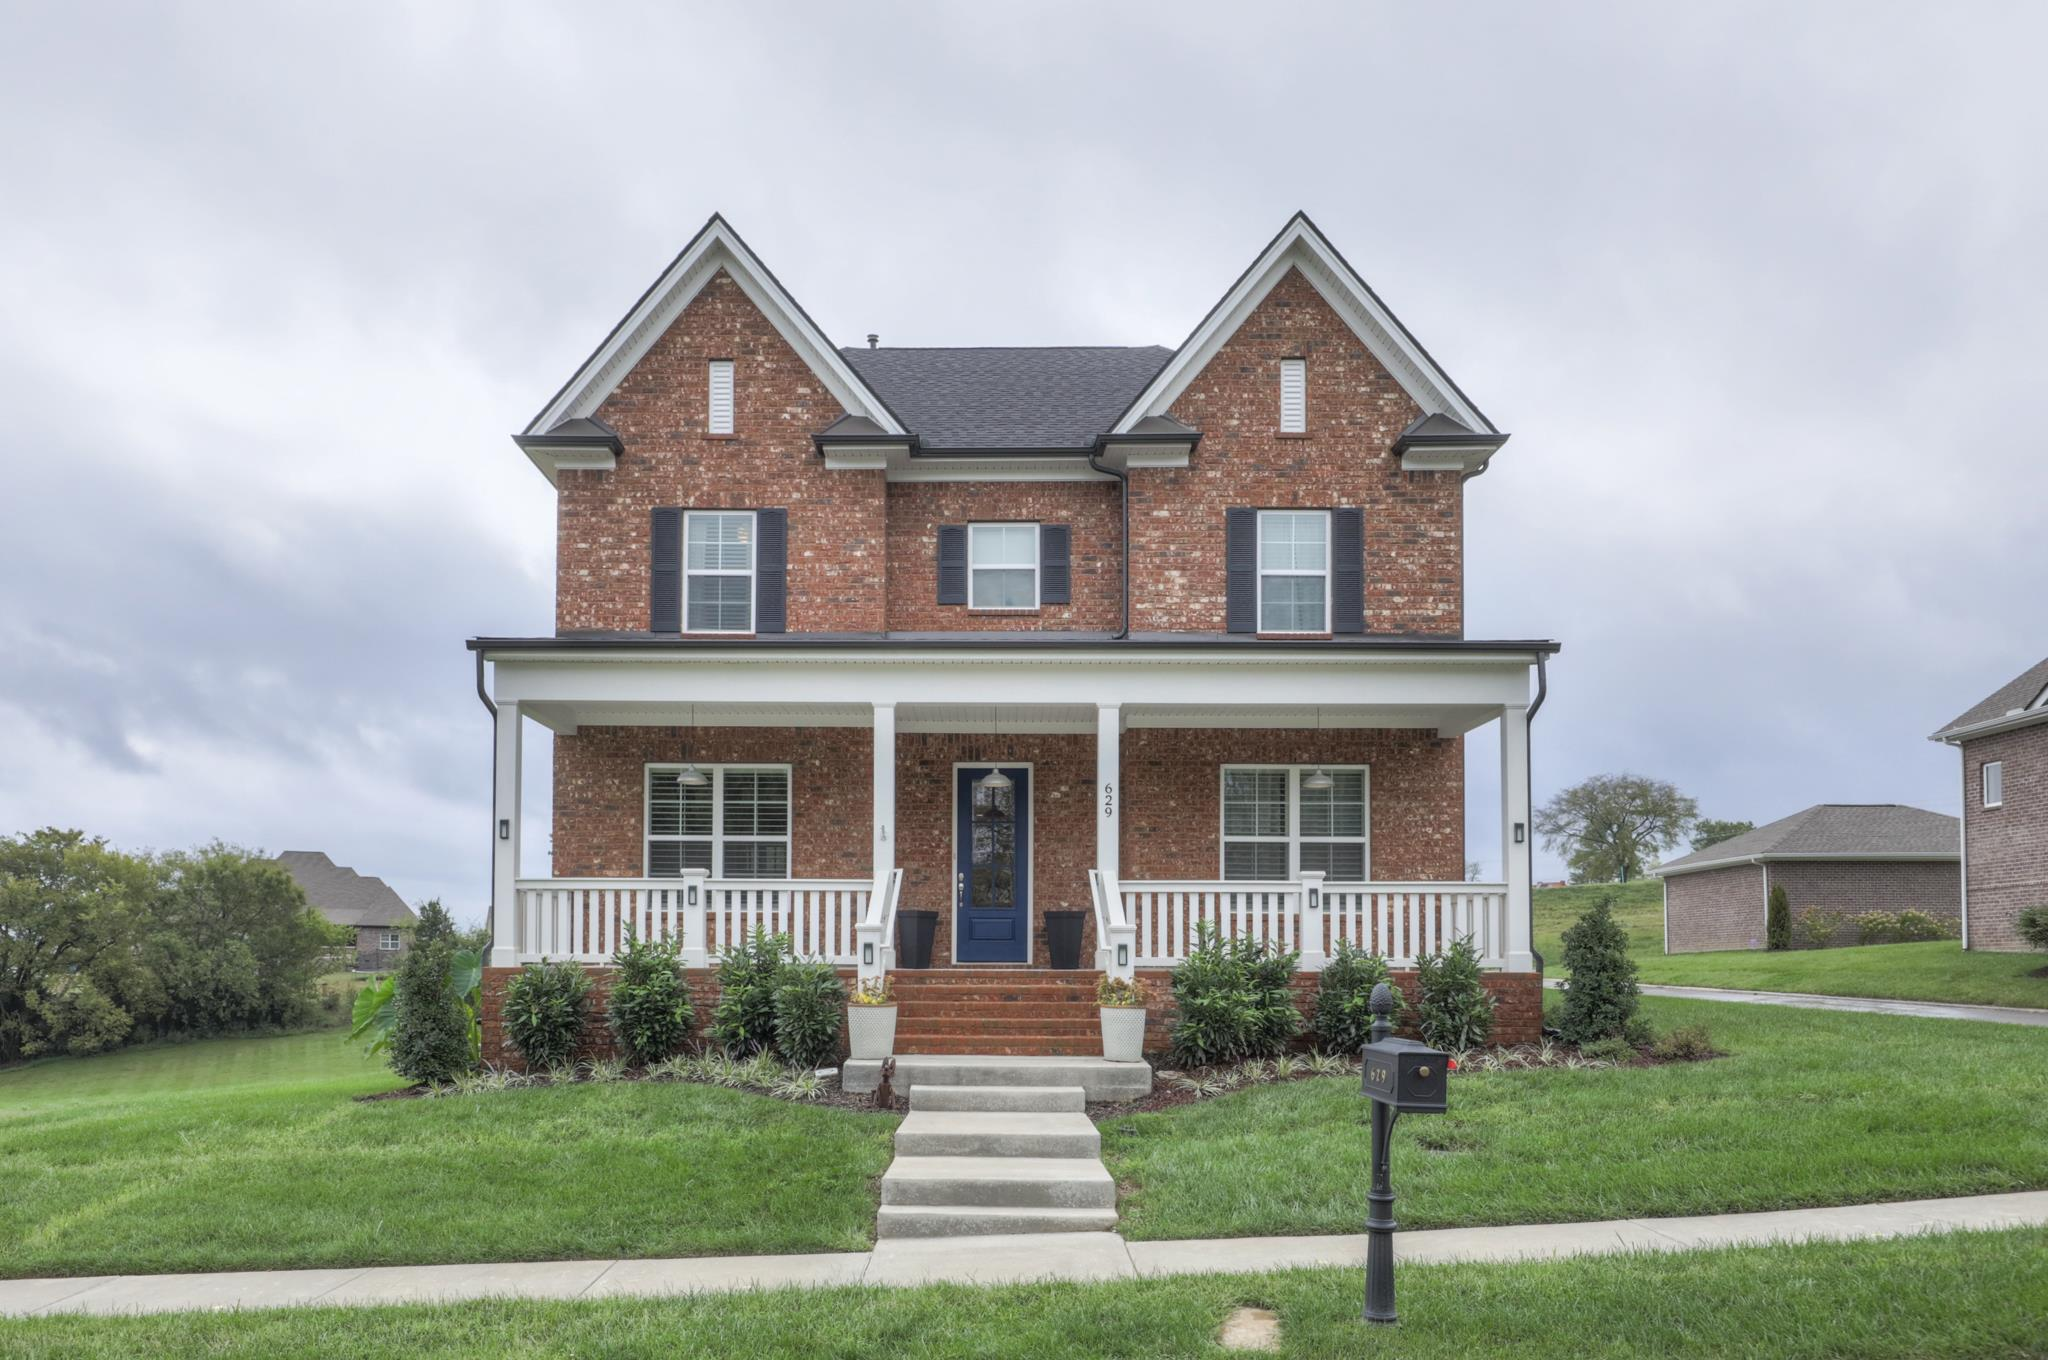 629 Vickery Park Dr, Nolensville, Tennessee